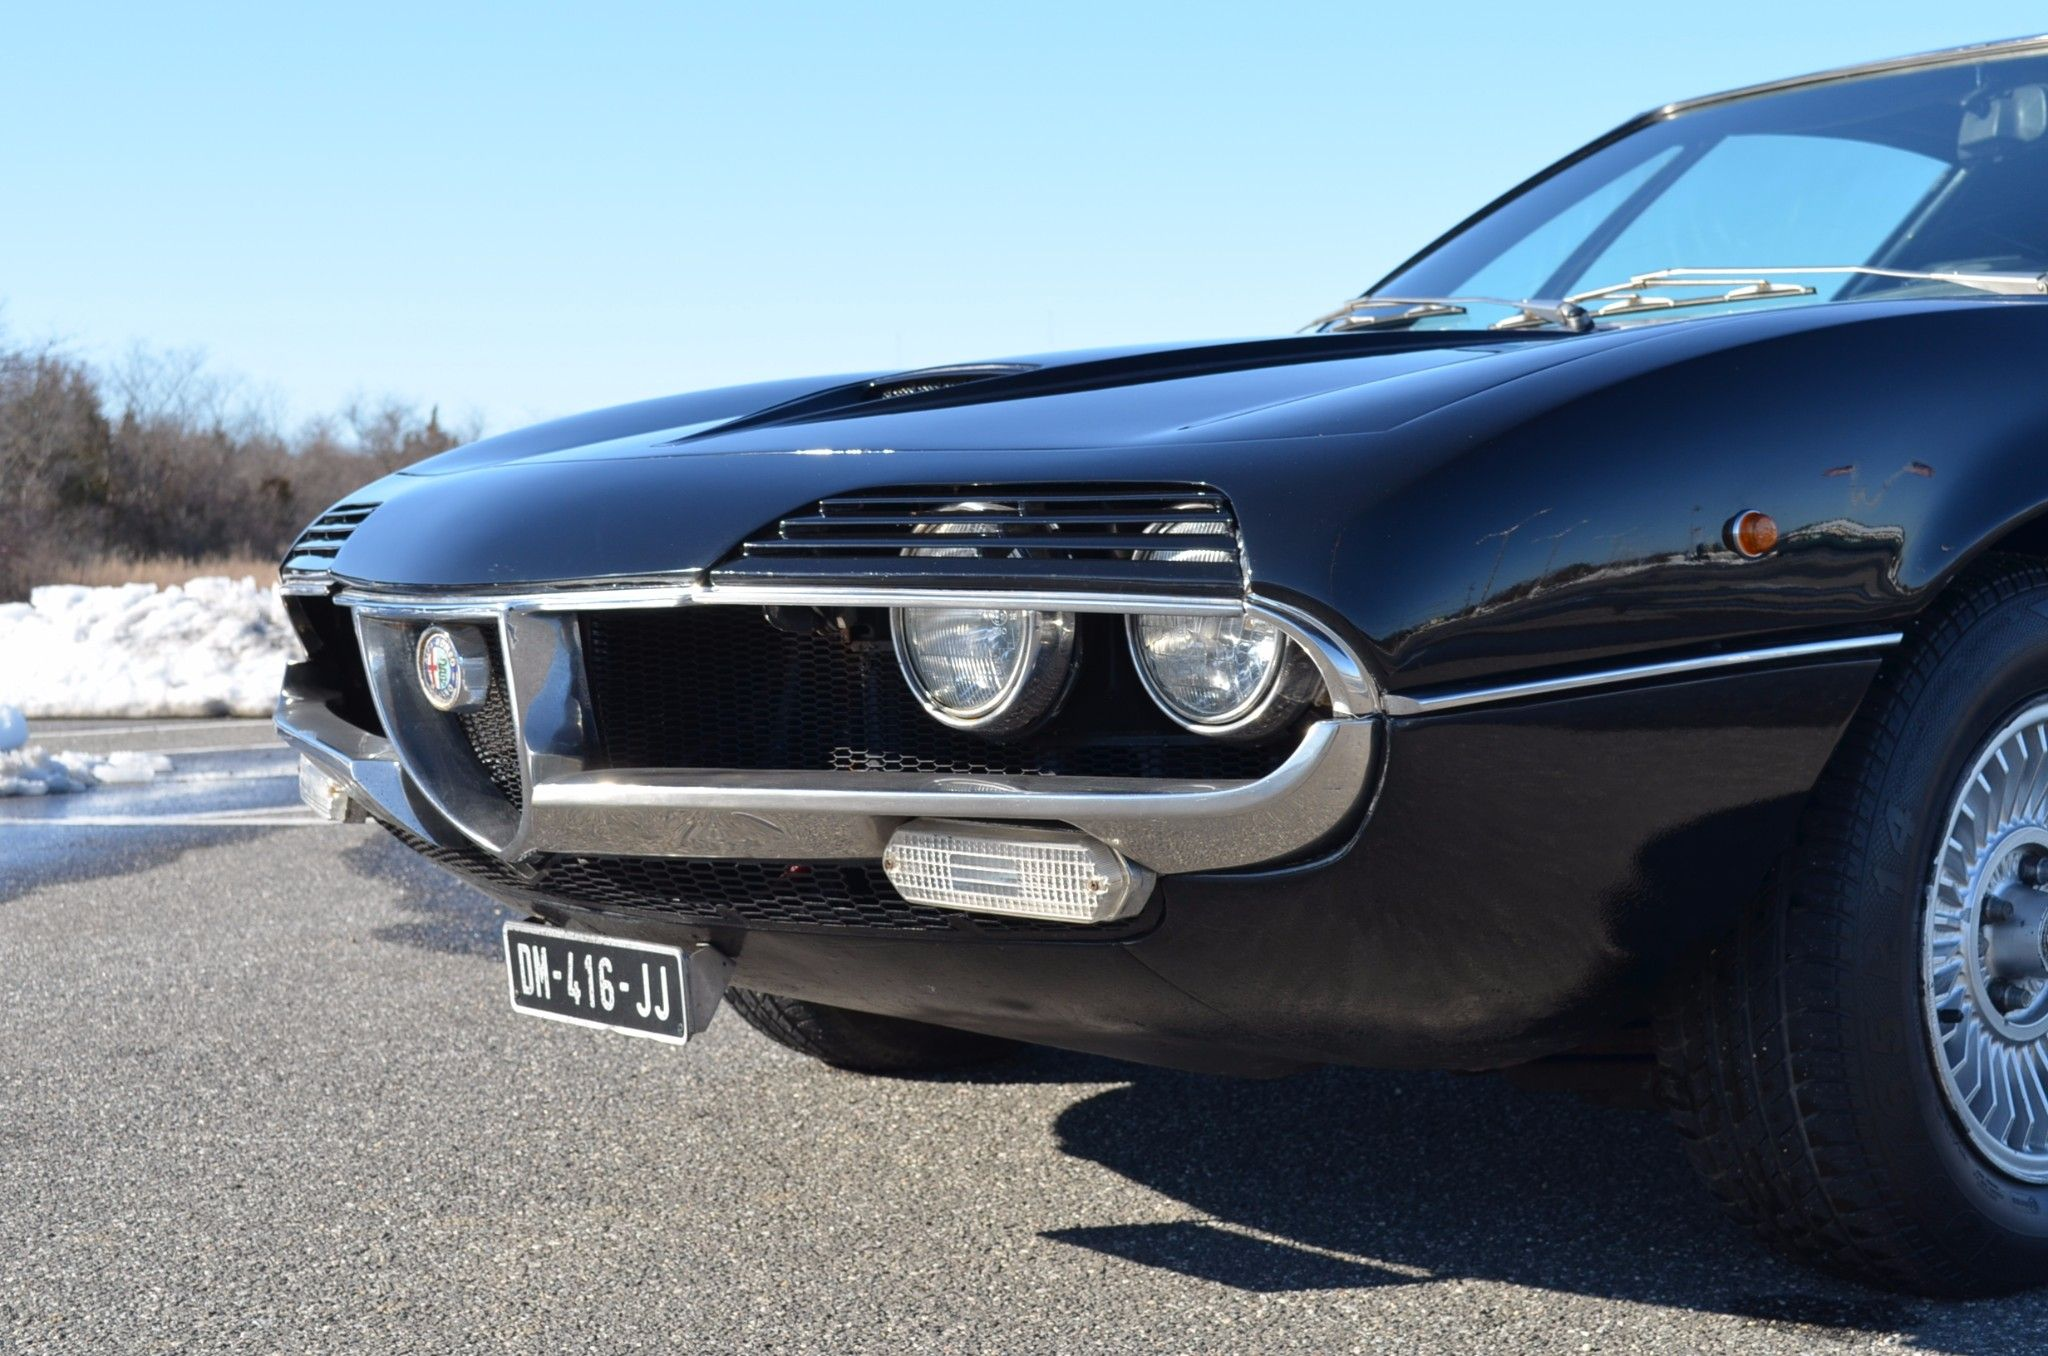 This 1971 Alfa Romeo Montreal shows 90k kilometers 56k miles and